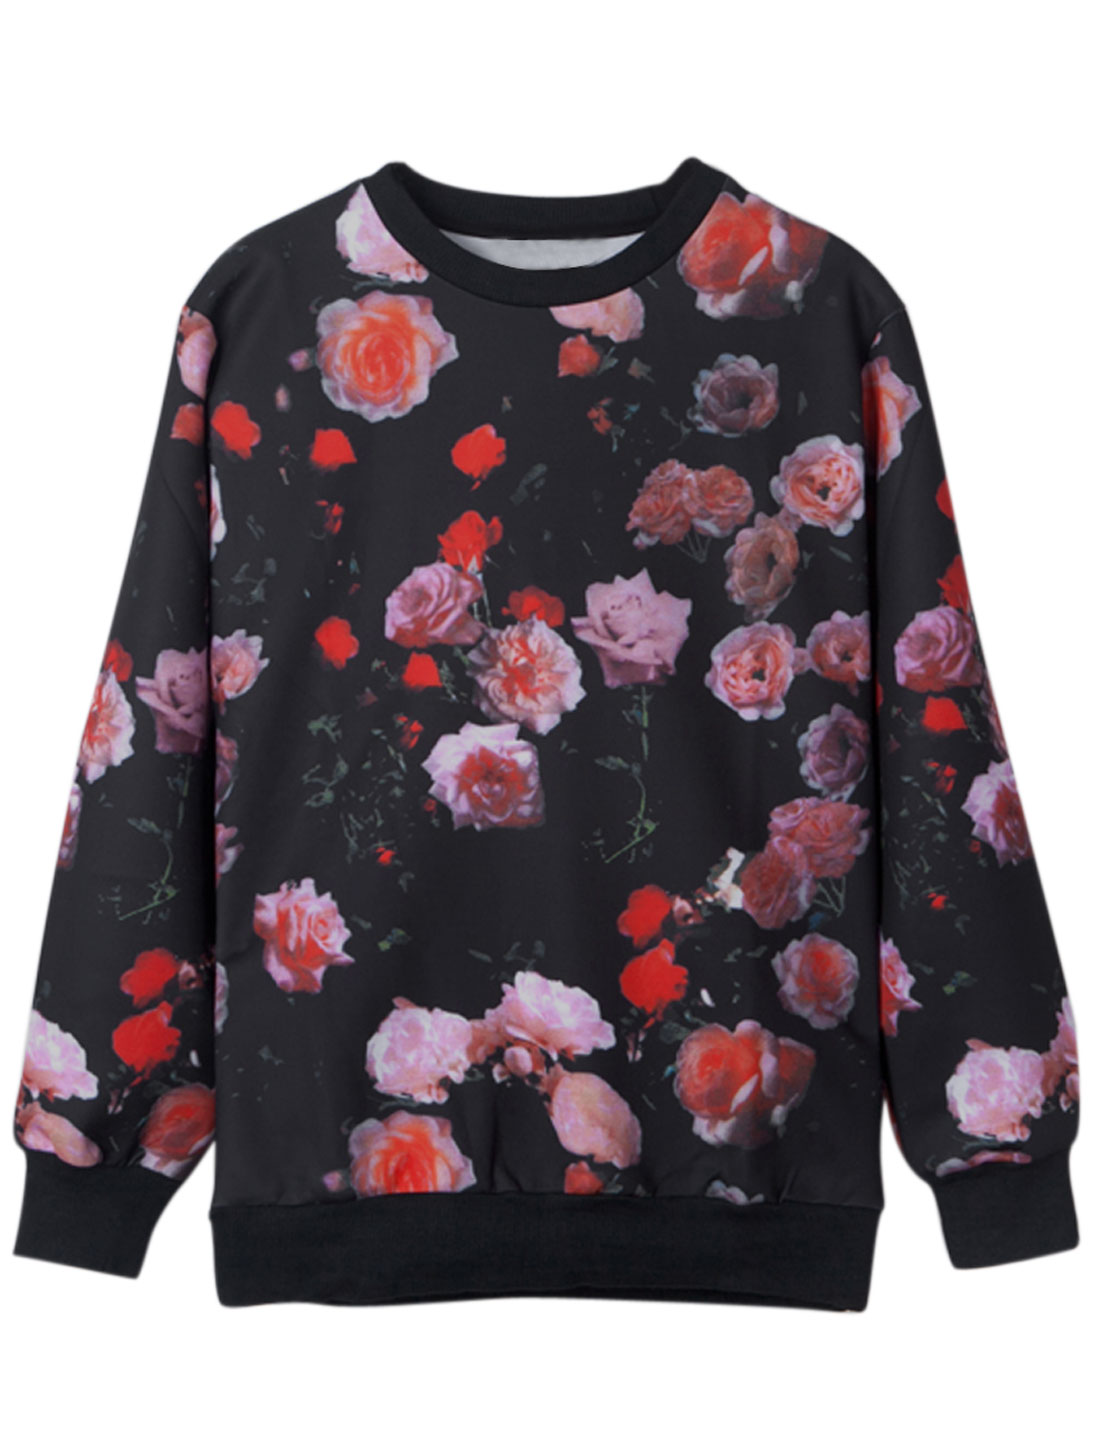 Men Ribbed Trim All Over Flower Print Casual Sweatshirt Black M